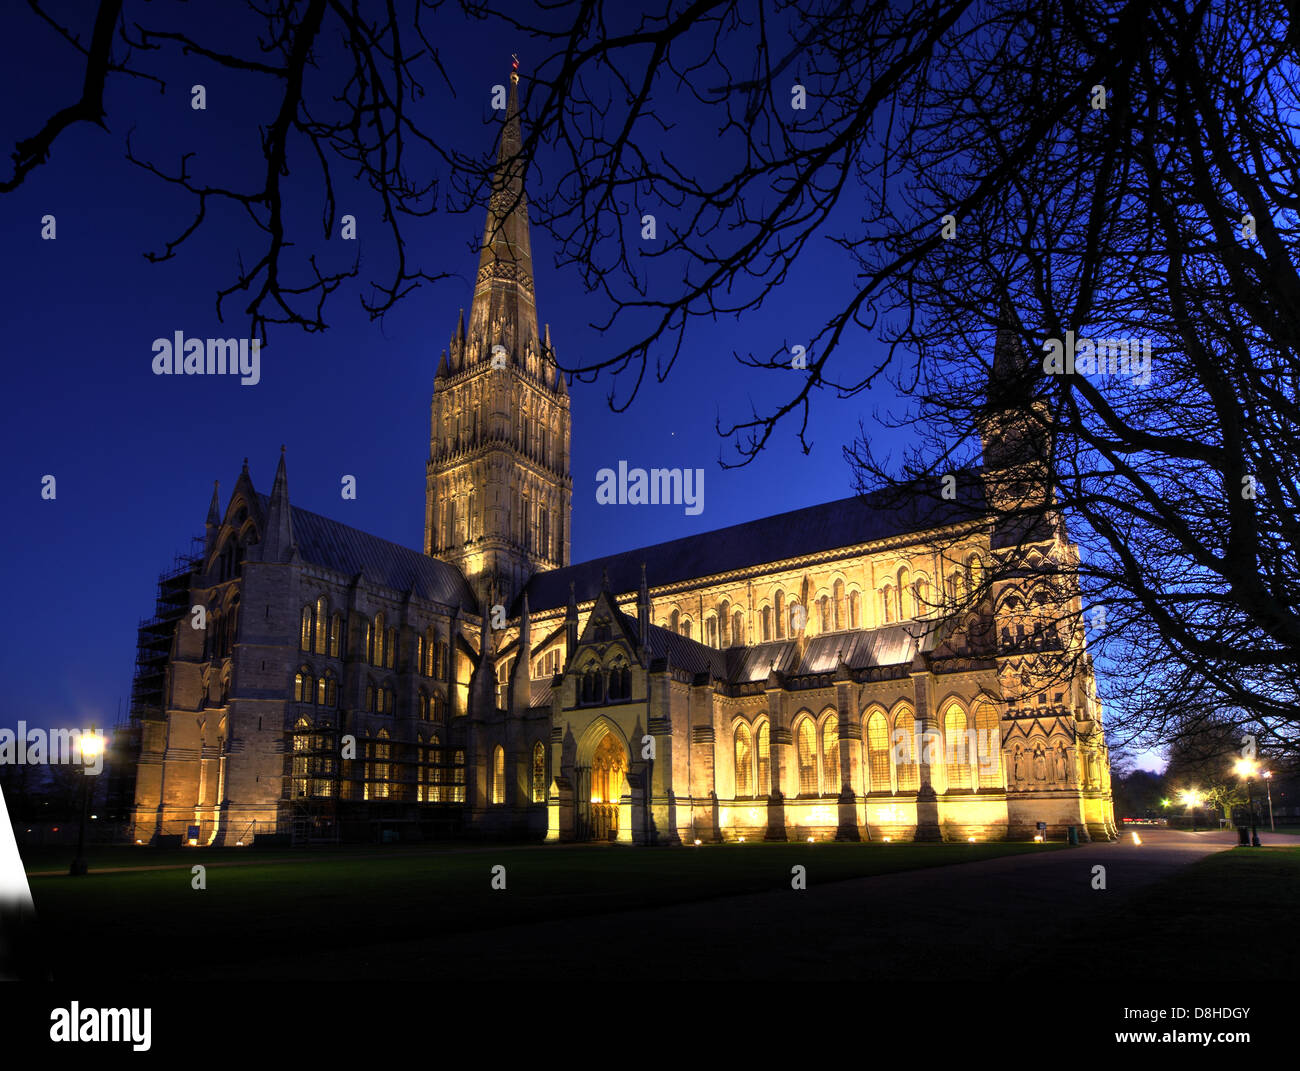 Salisbury Cathedral at dusk in the winter - Stock Image